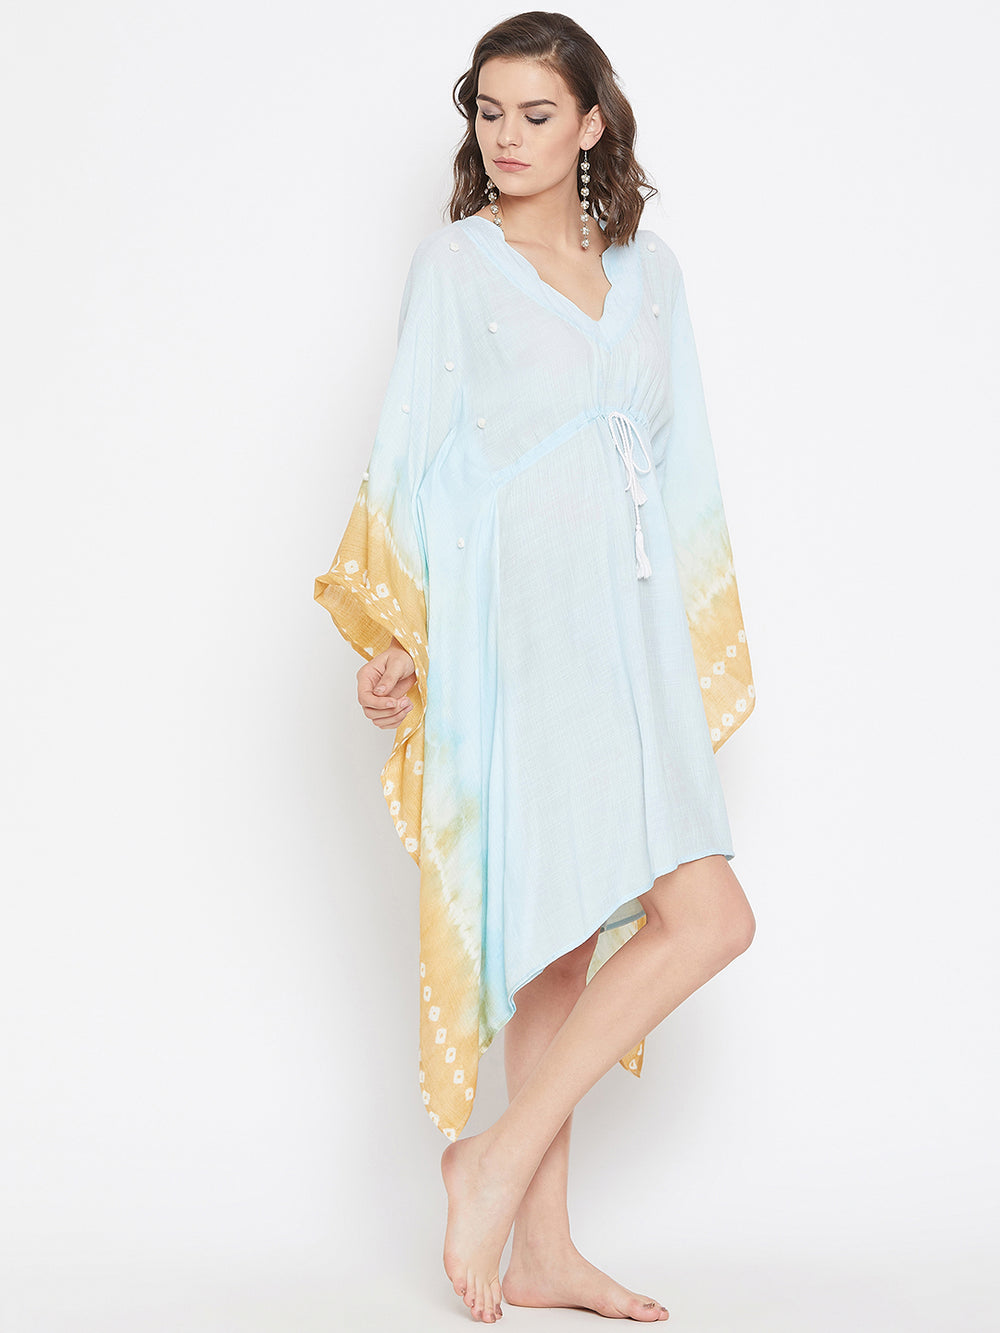 Sandy Skies Tie-Dye Kaftan Cover-Up